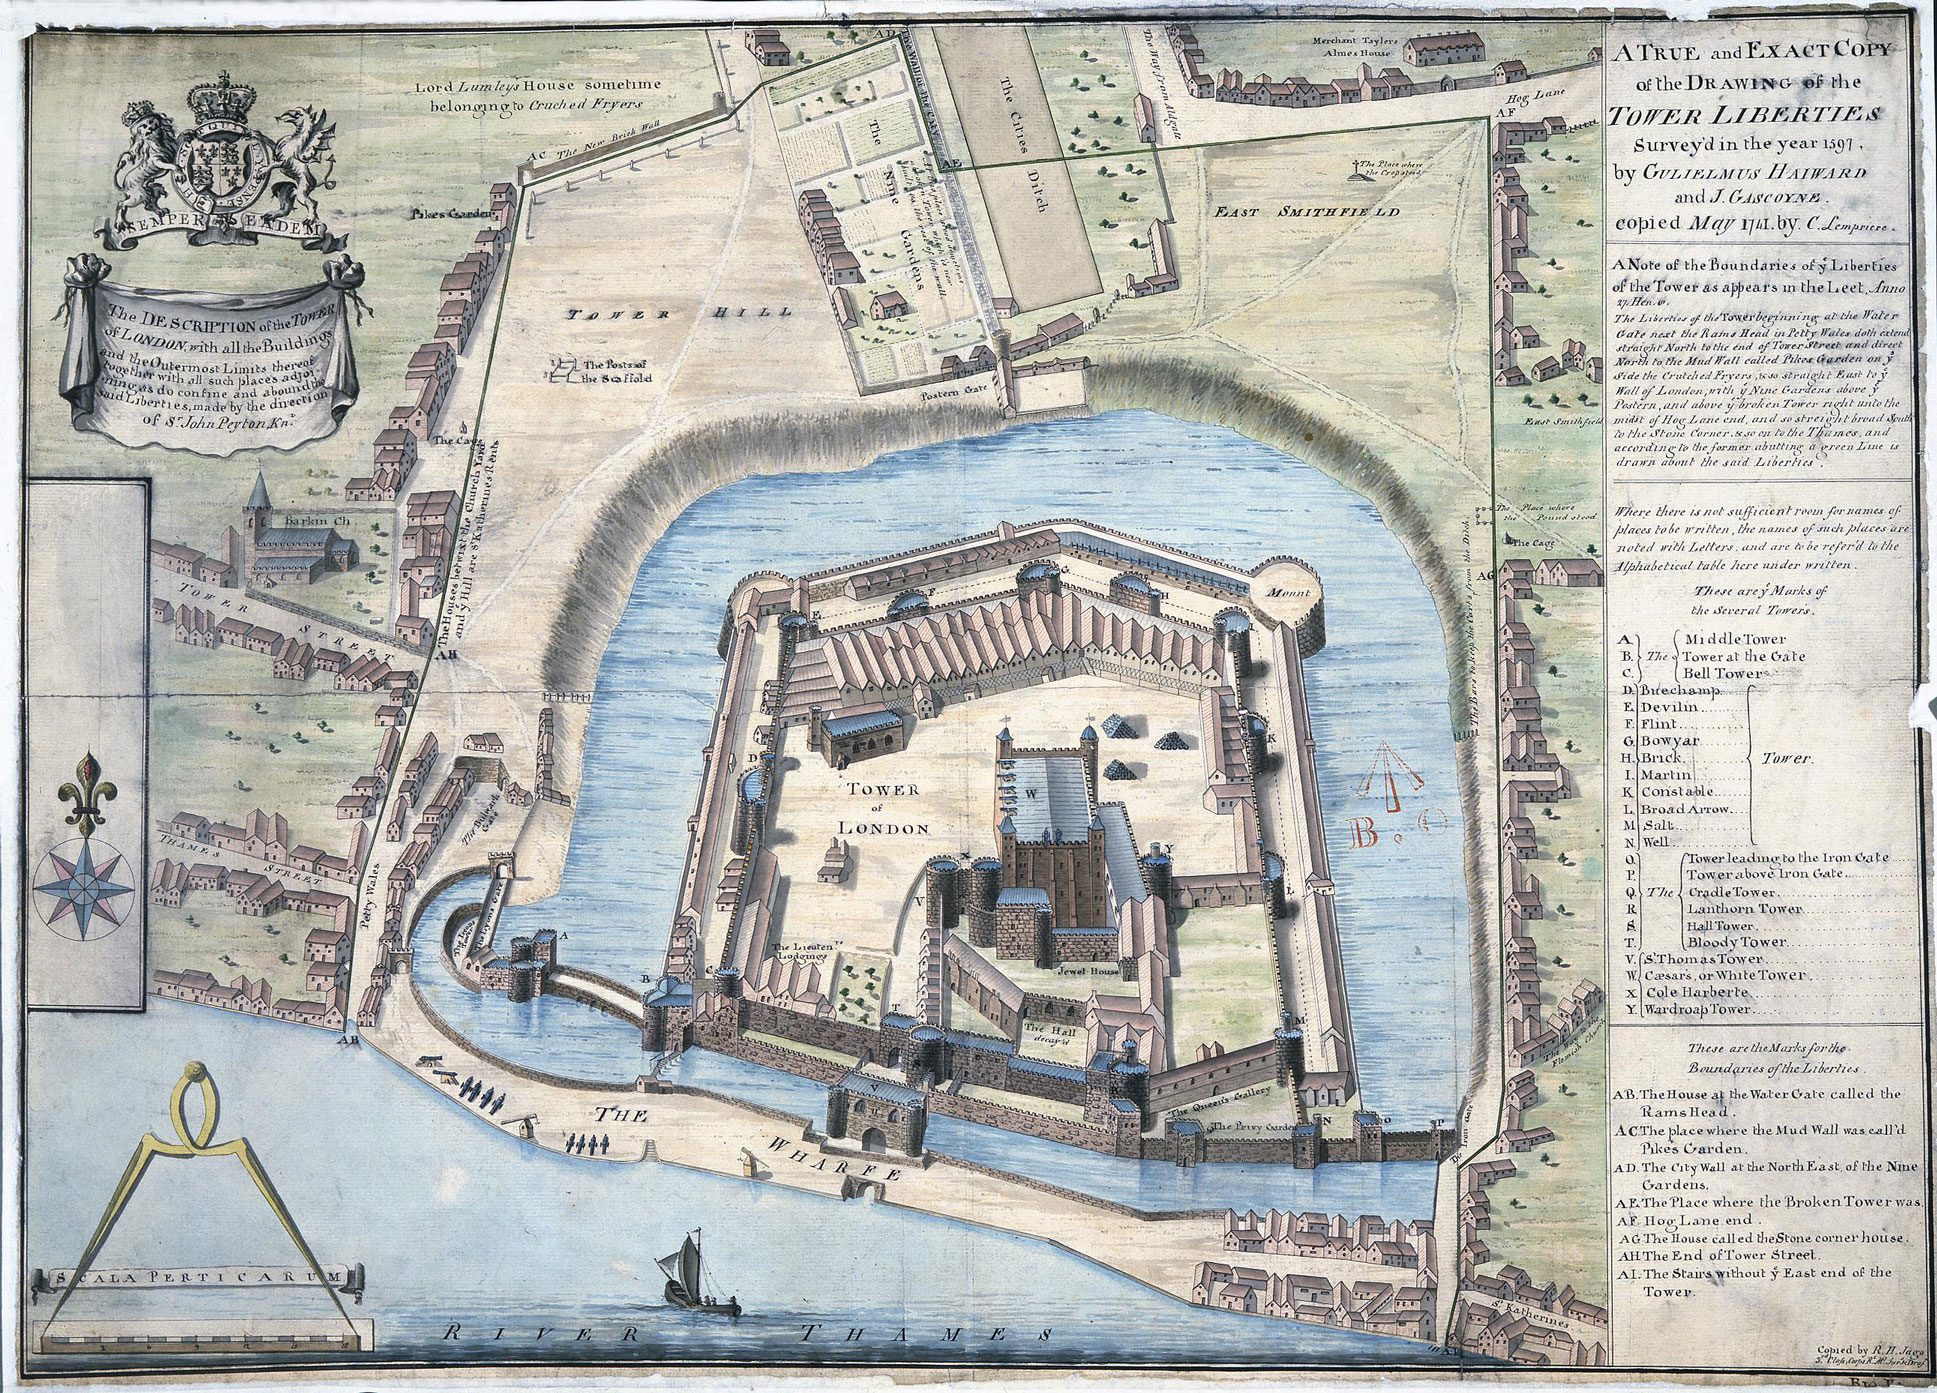 MPH1/213 1597-1741 Tower of London